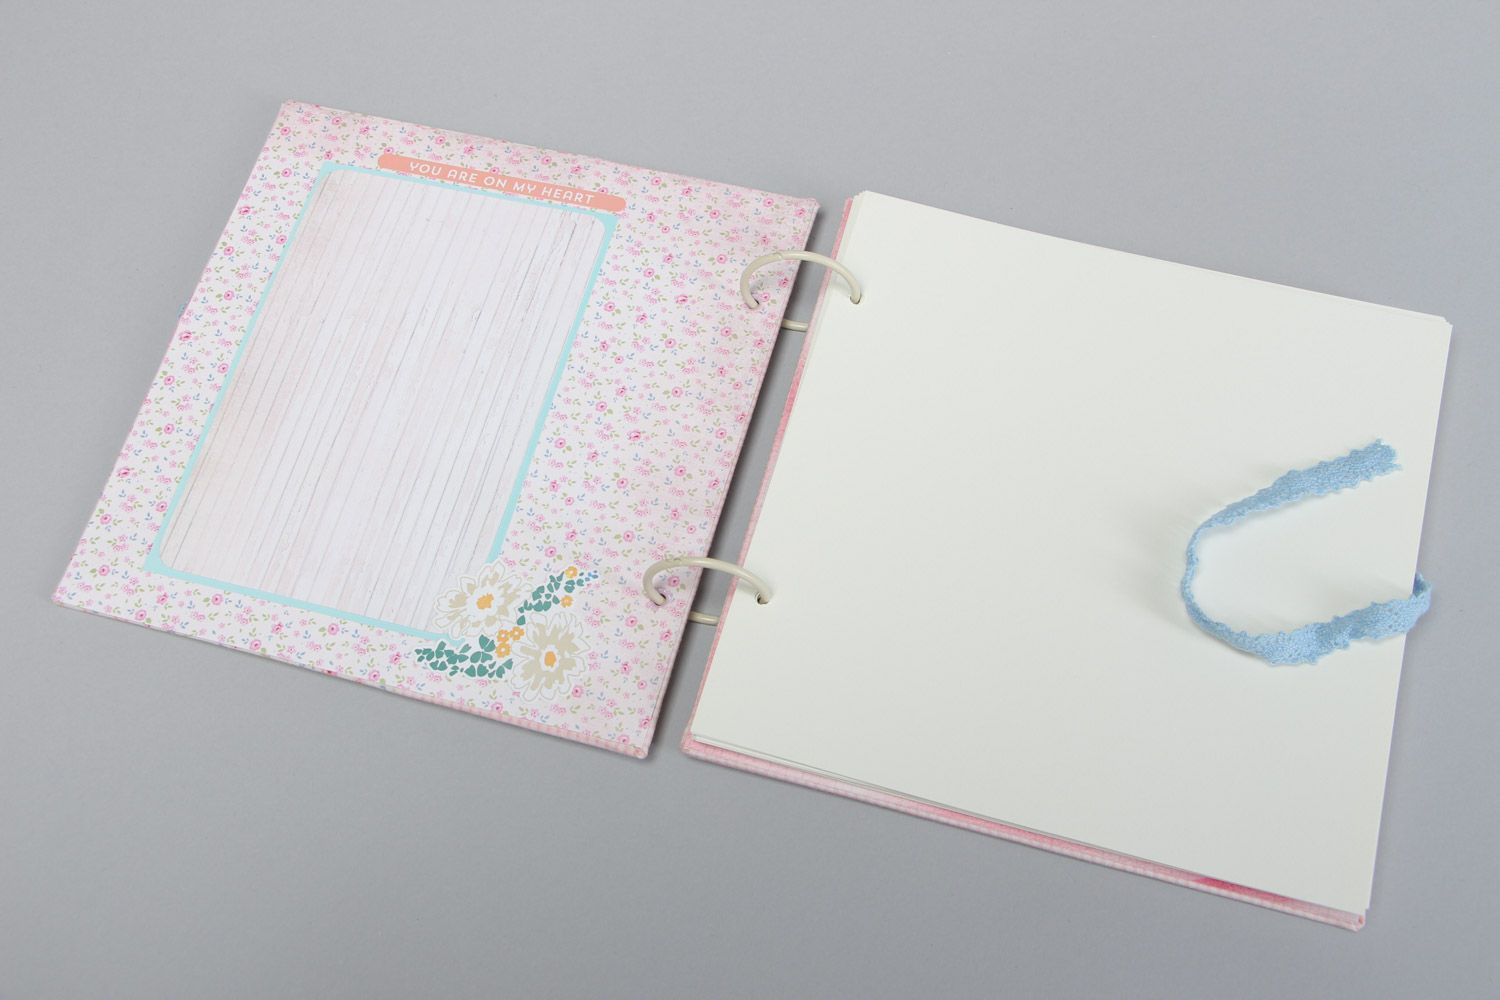 Handmade designer scrapbooking photo album for 25 pages in pink colors photo 3